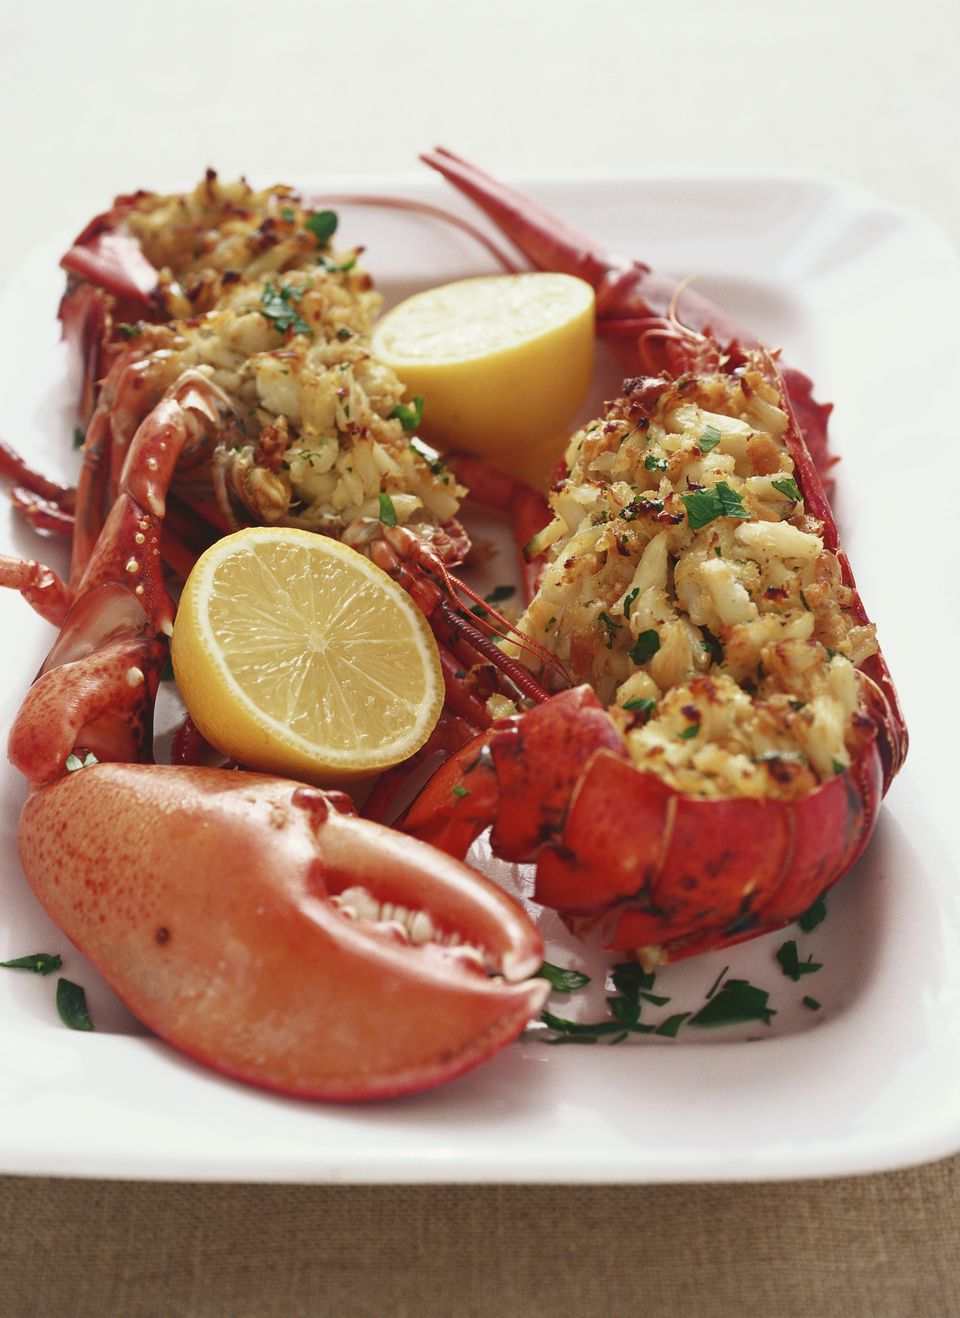 Baked Stuffed Lobster with Crab Meat and Bread Crumb Stuffing Garnished with Lemon Halves